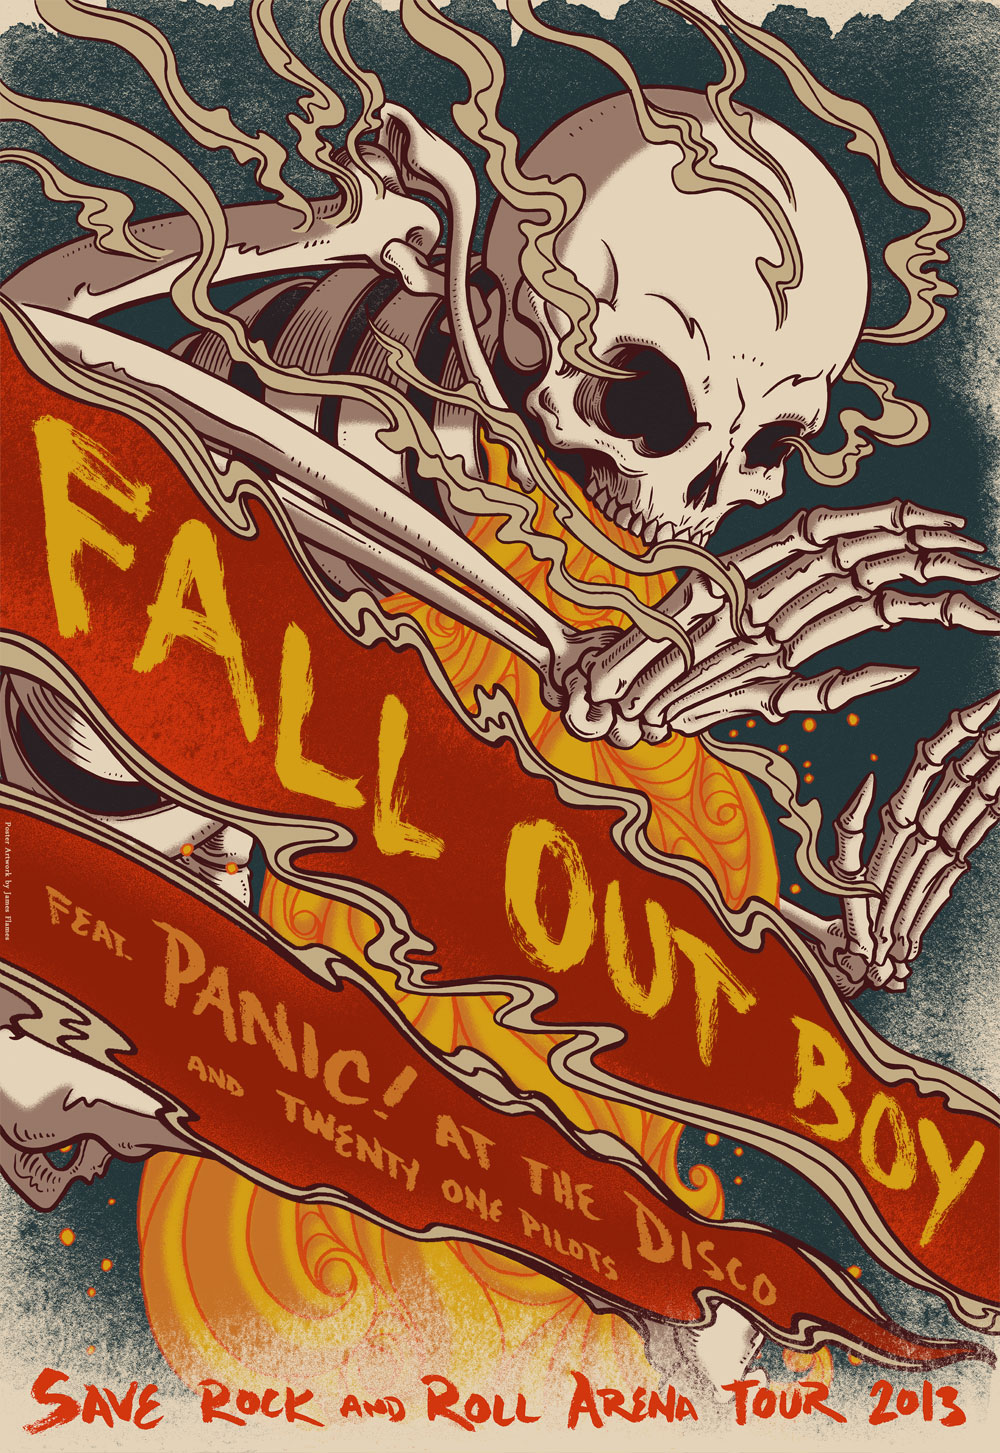 Concert Review Twenty One Pilots Panic At The Disco And Fall Out Boy In Philadelphia